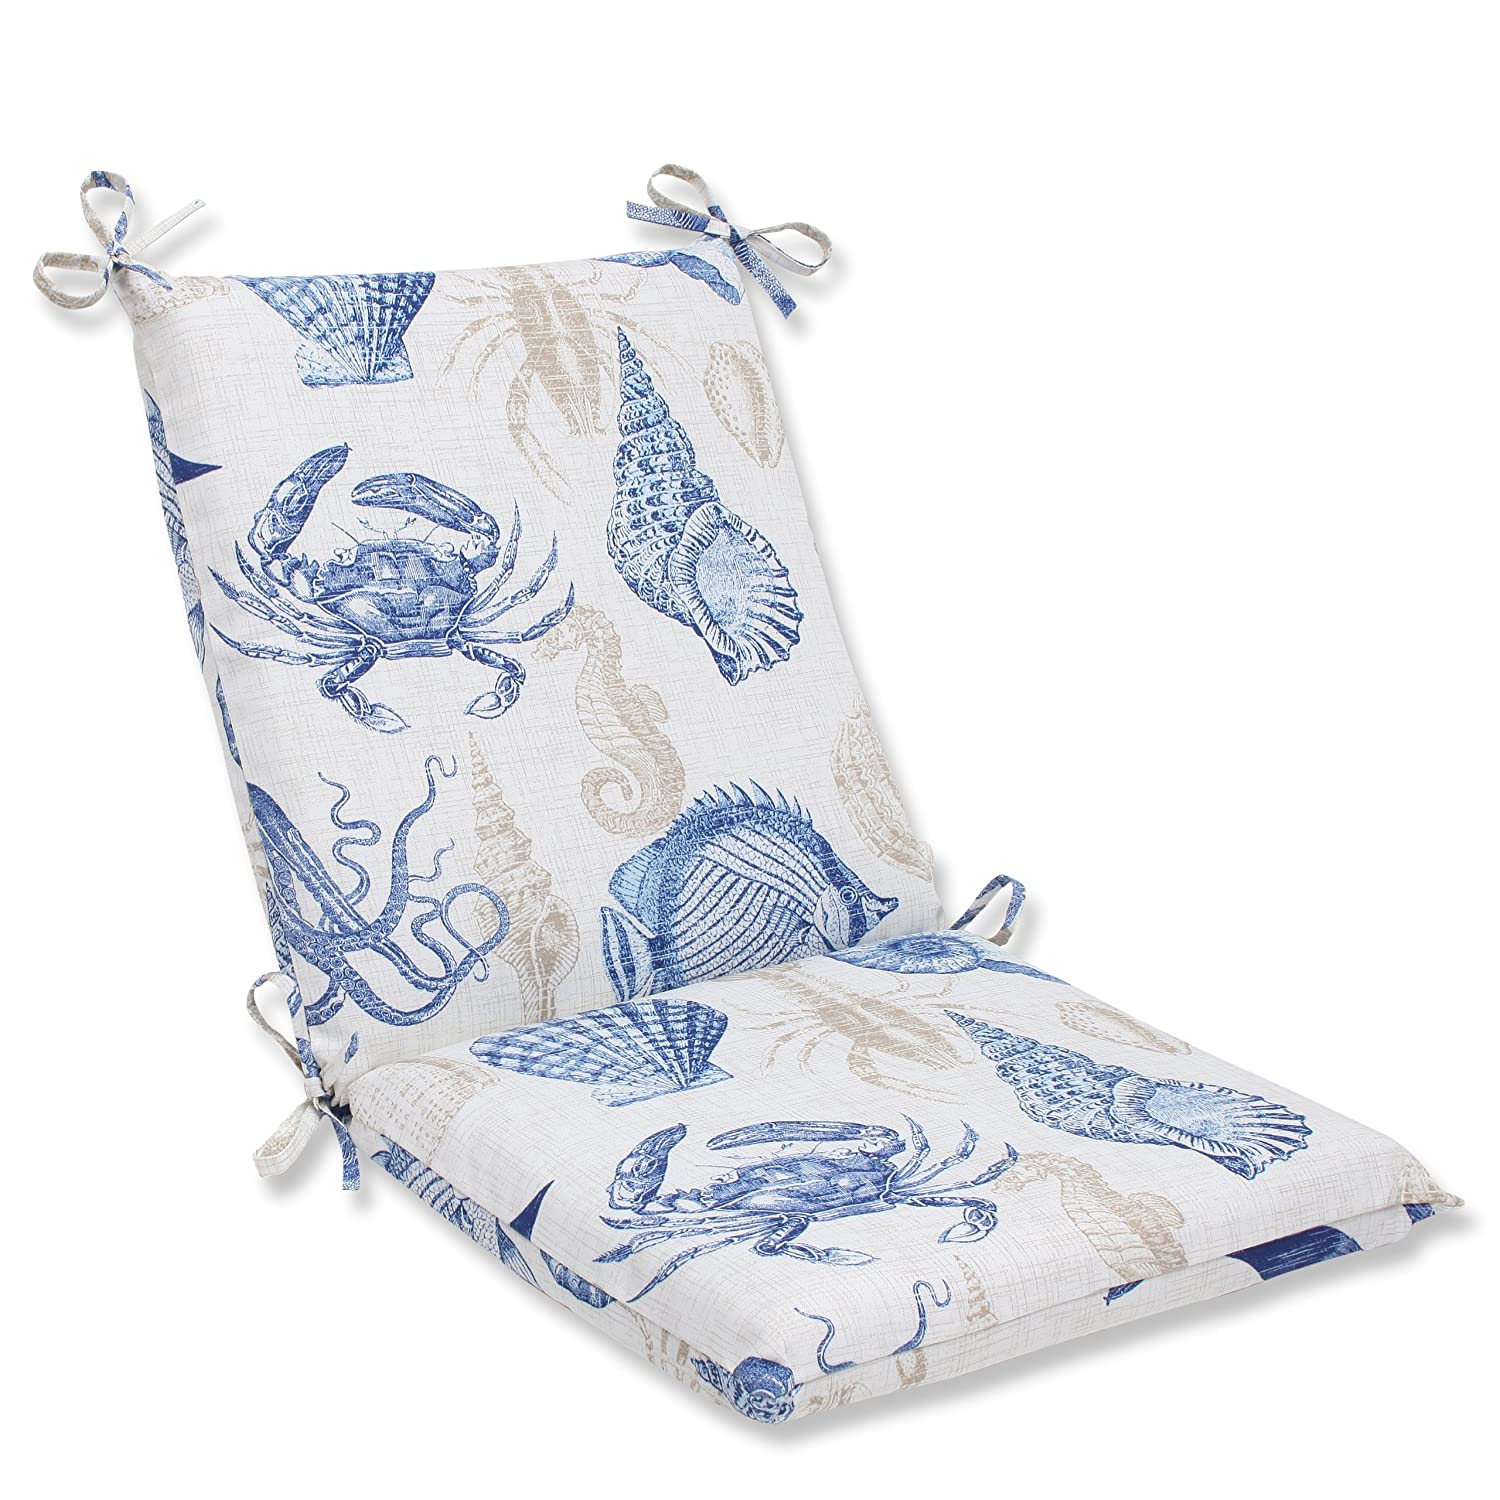 Pillow Perfect Outdoor Sealife Marine Squared Corners Chair Cushion